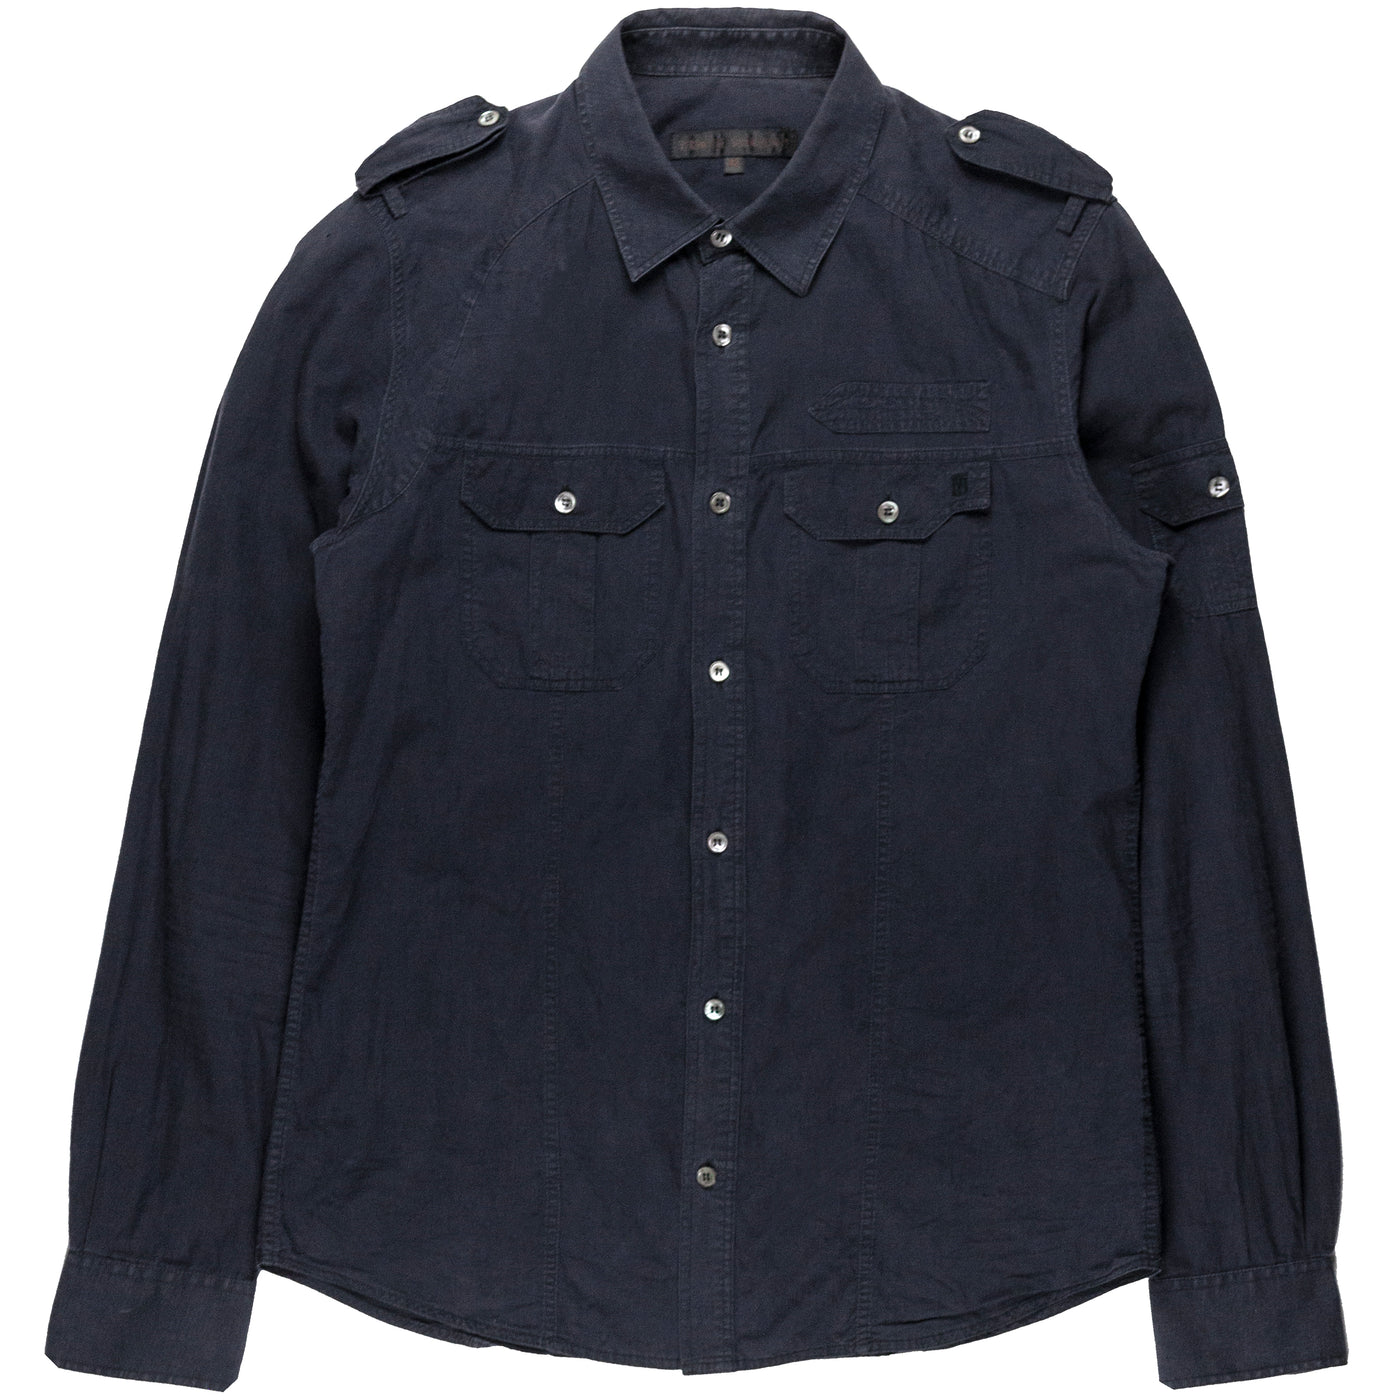 Veronique Branquinho Man Military Officer Shirt - SS06